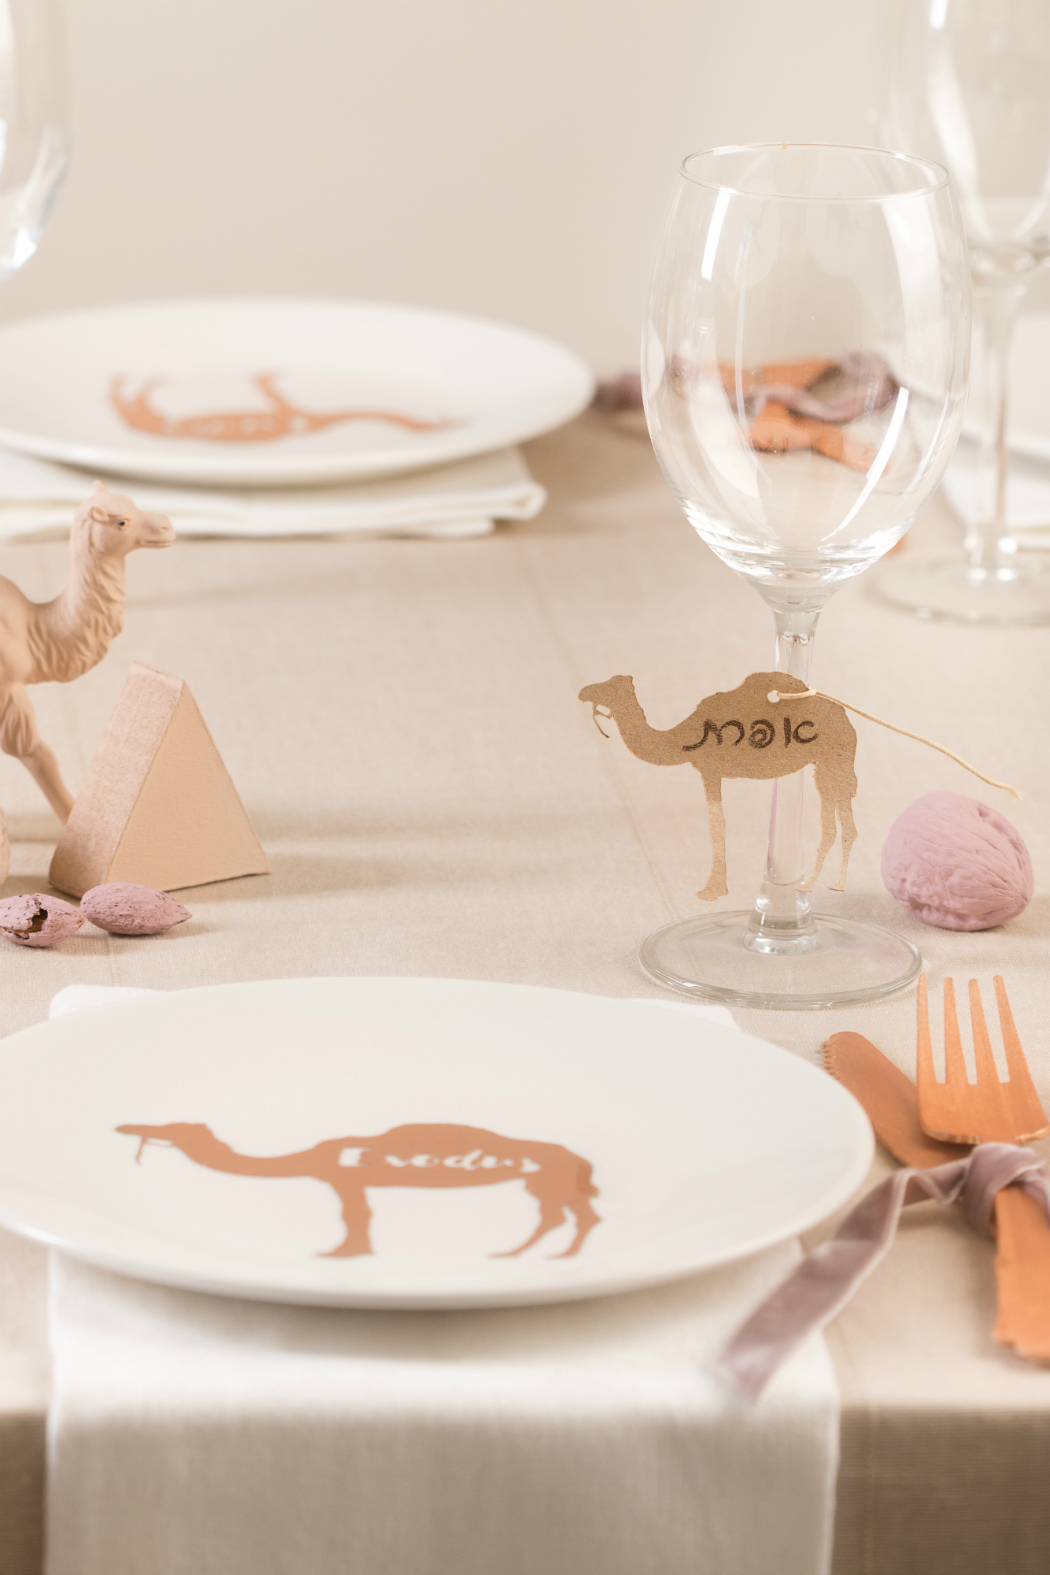 table desert camels pyramids eygpt sand pink, camels plates, rose gold fork and knife nuts hazelnuts camel place cards